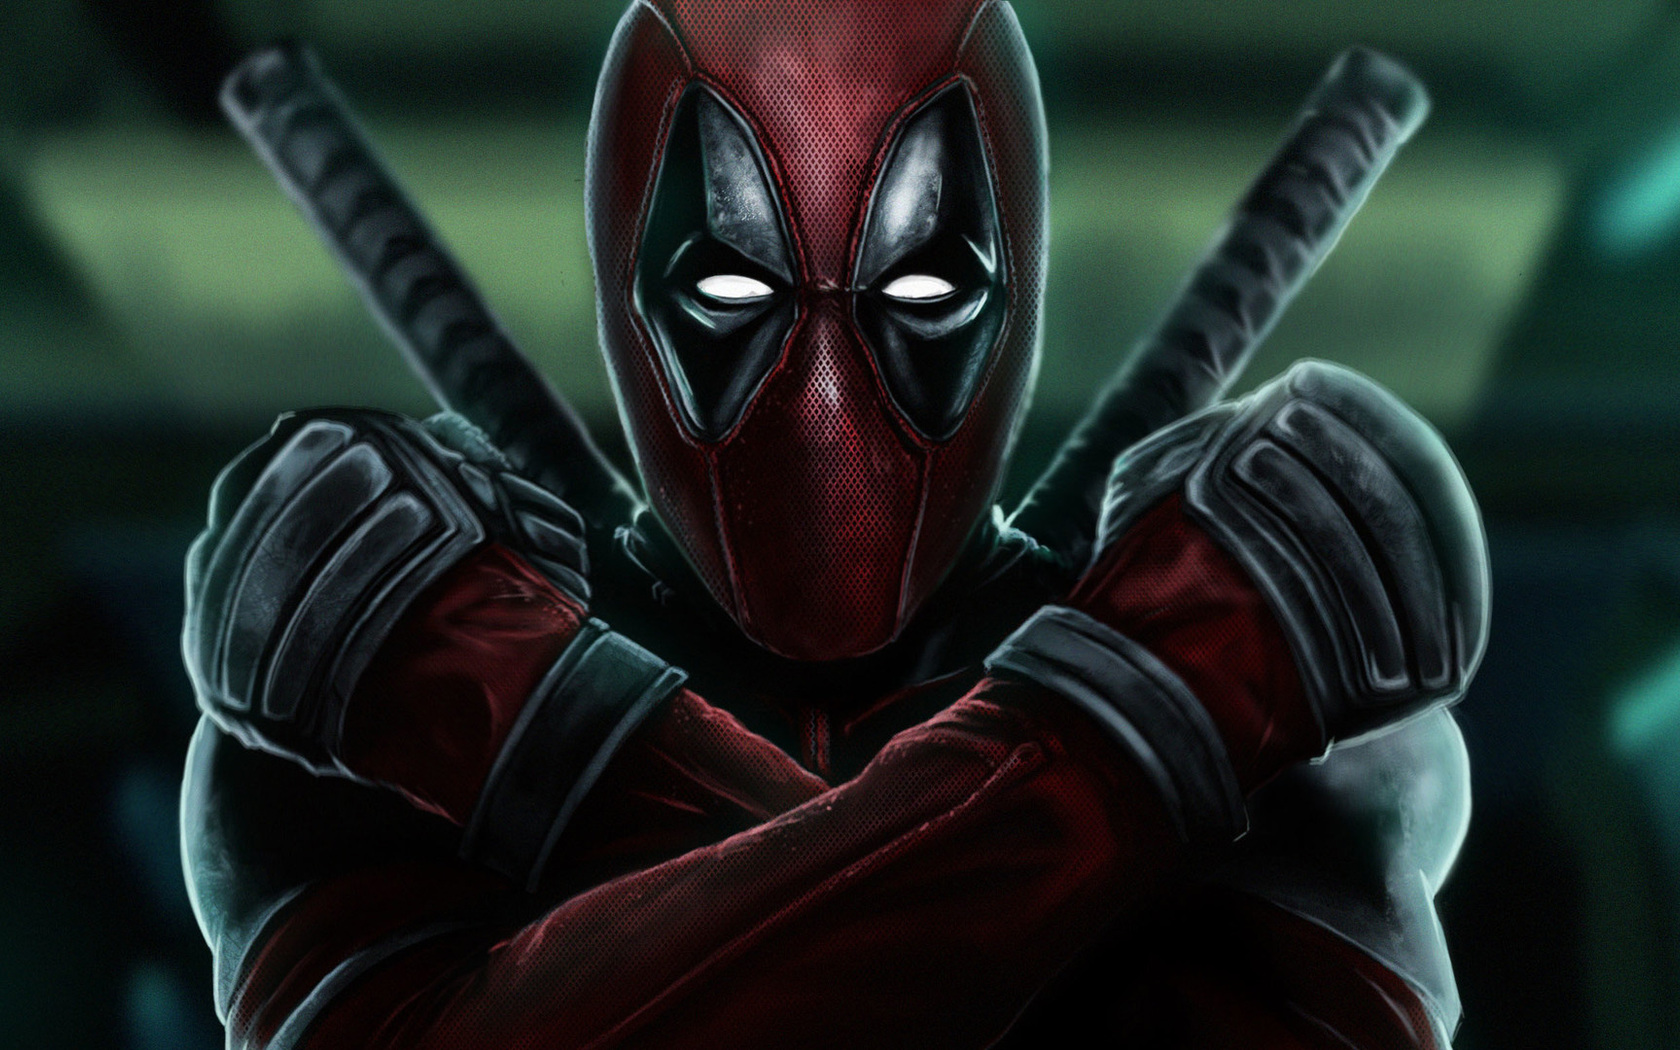 1680x1050 Deadpool 2 X Force Art 1680x1050 Resolution Hd 4k